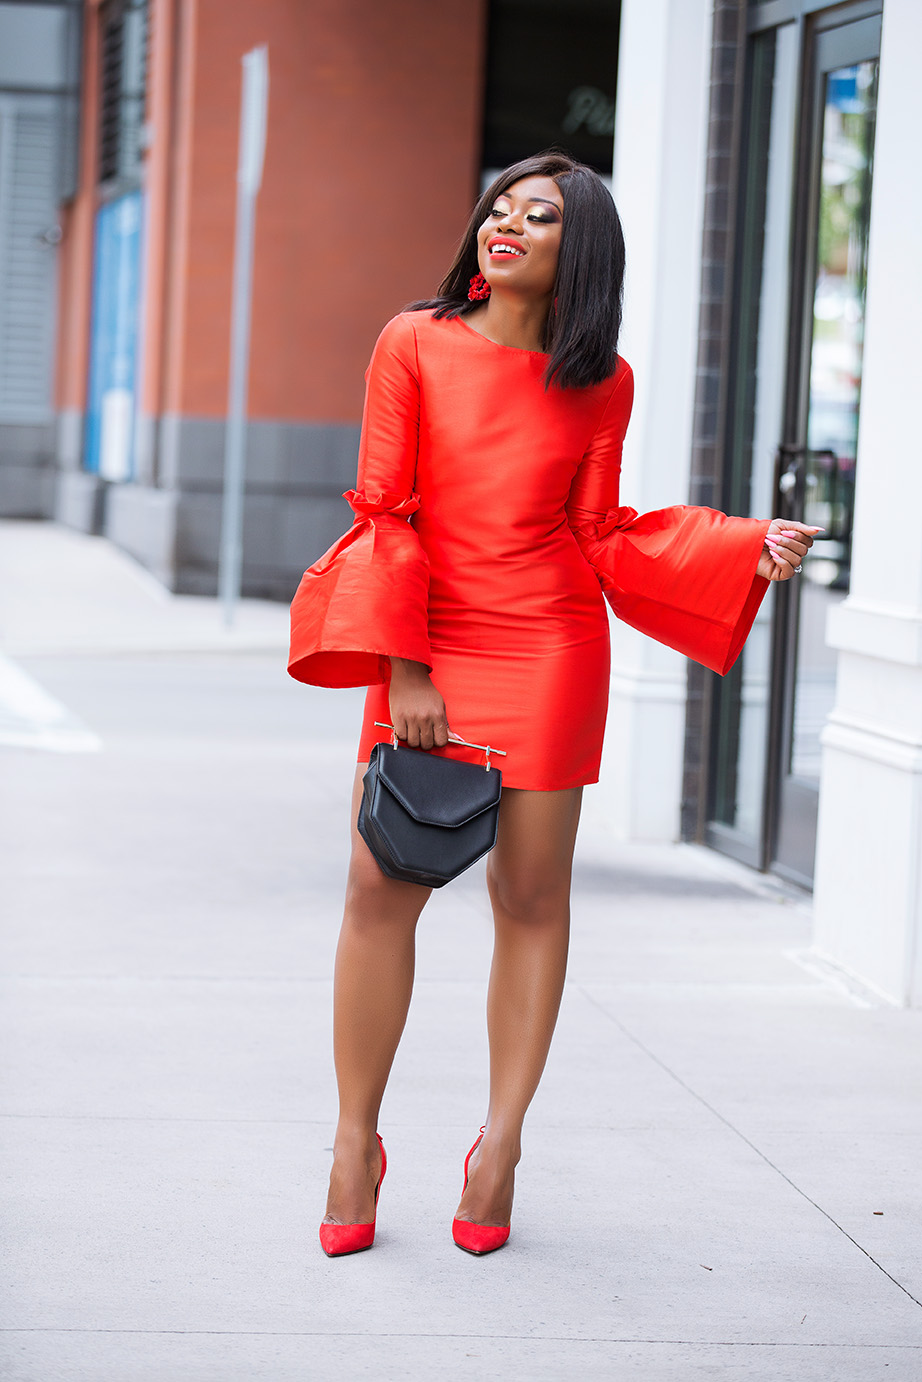 Asos structured extreme eleeve mini dress, www.jadore-fashion.com